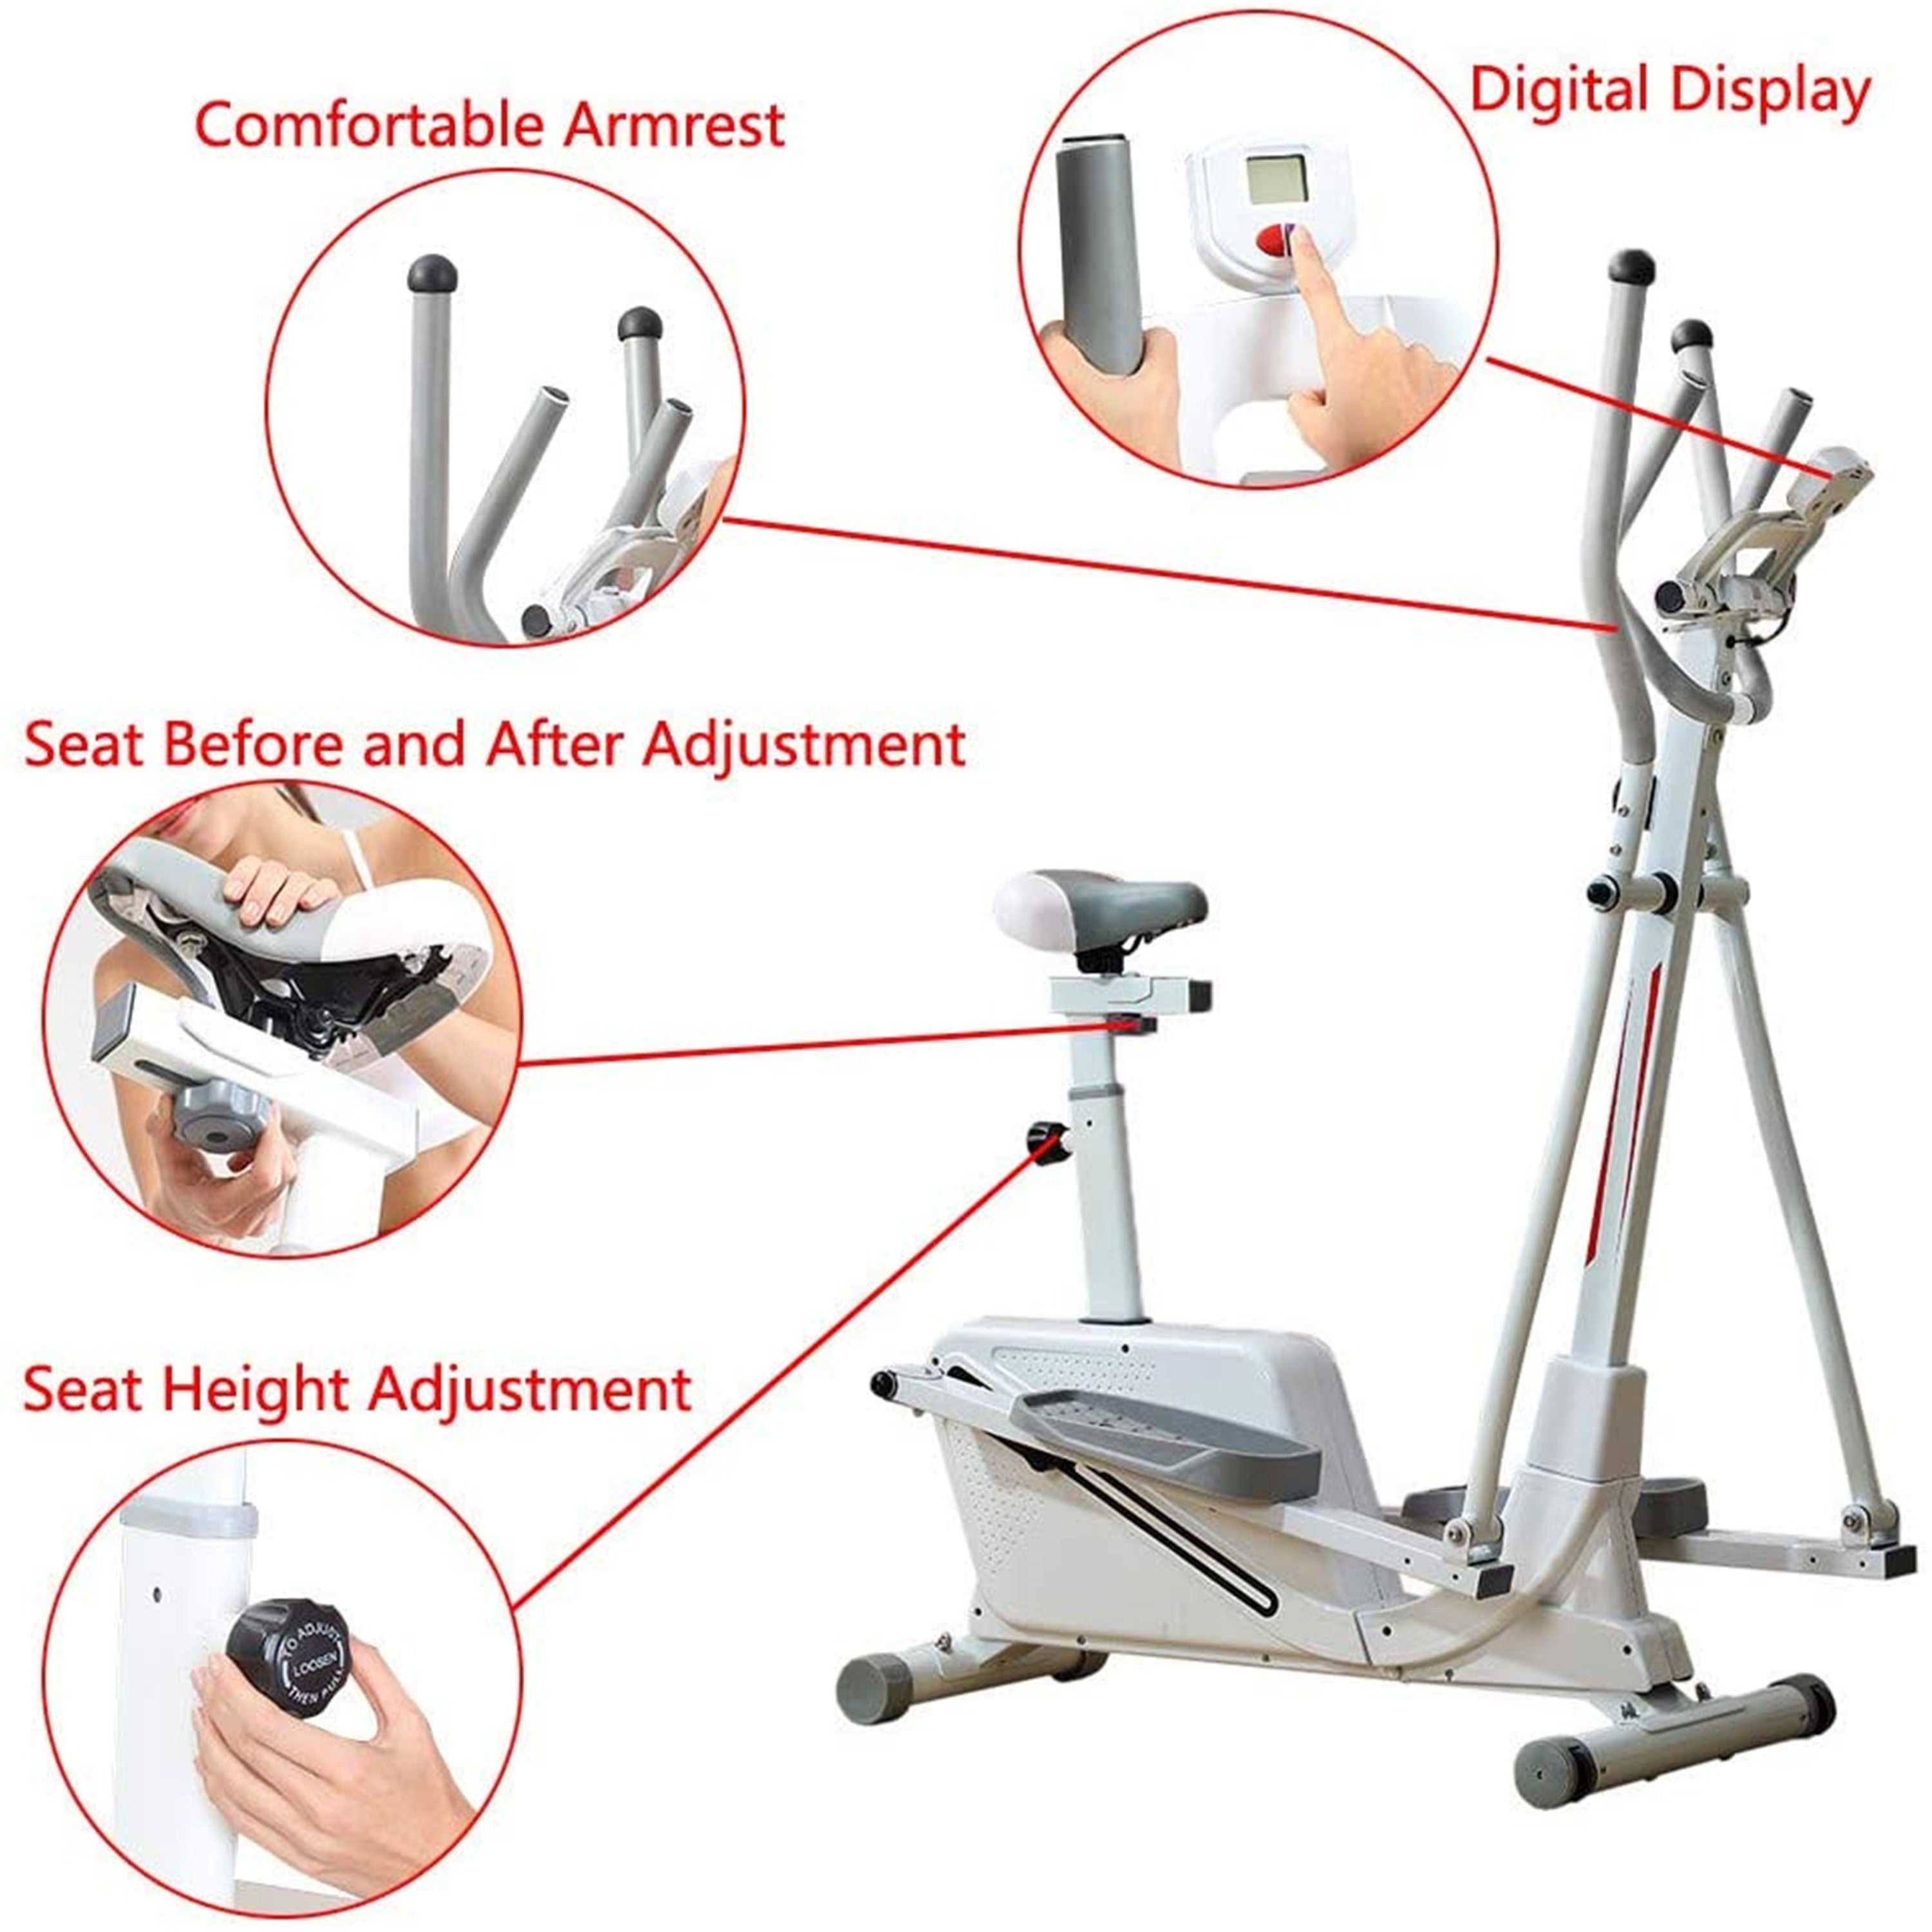 Compact Life Fitness Exercise Equipment for Home Workout Office Gym Infidev Elliptical Machines for Home Use Fitness Magnetic Elliptical Trainer Machine Stepper w//Digital Display /& Tablet Holder